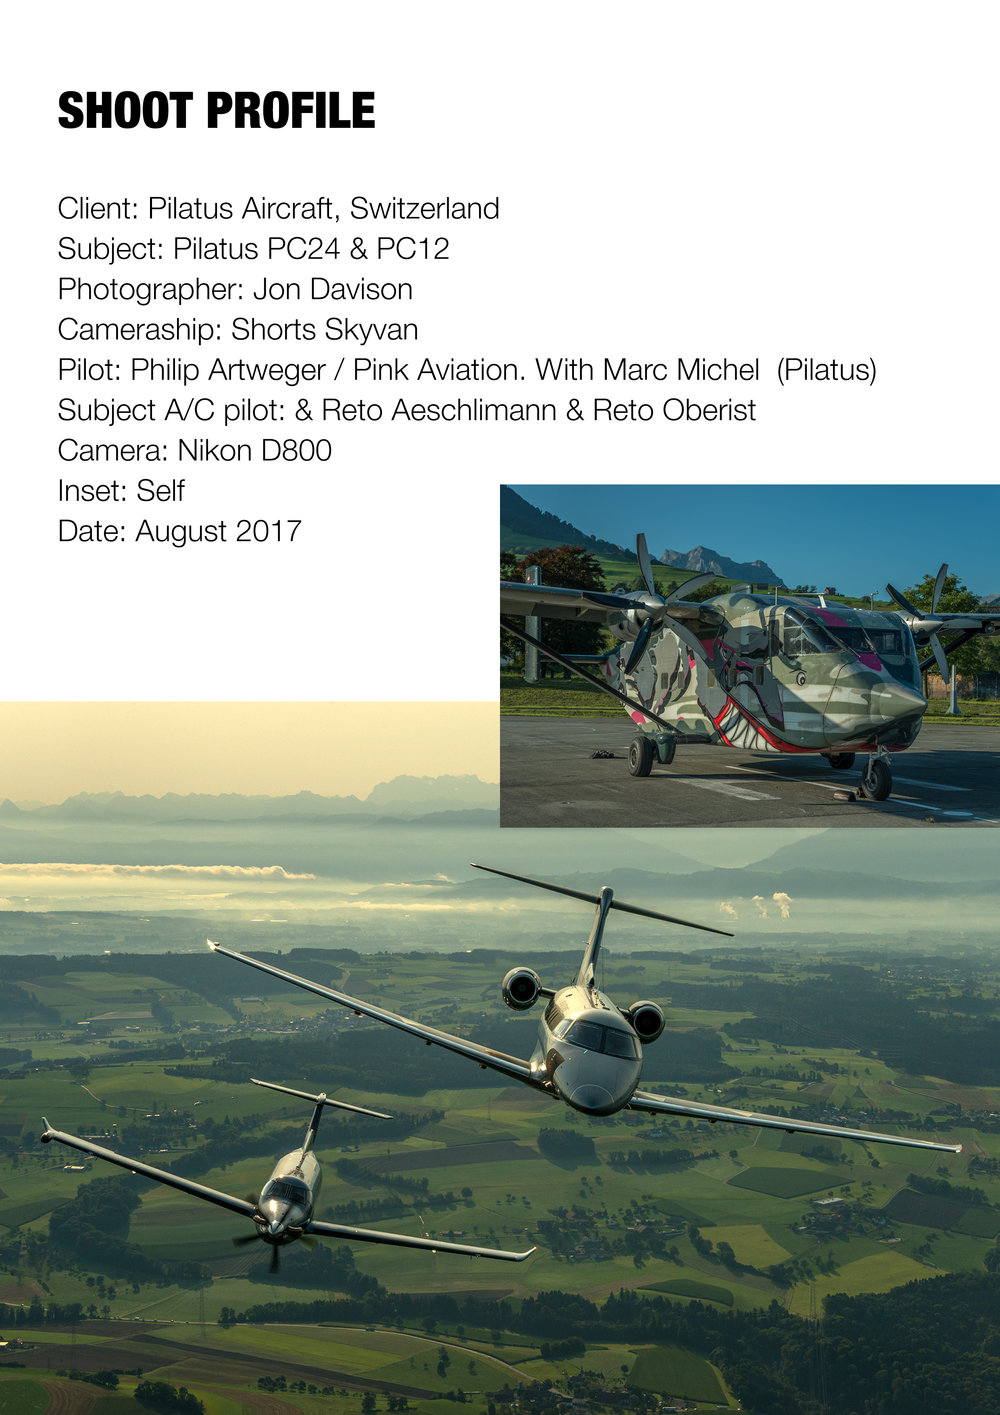 Pilatus PC12 and PC24, Switzerland